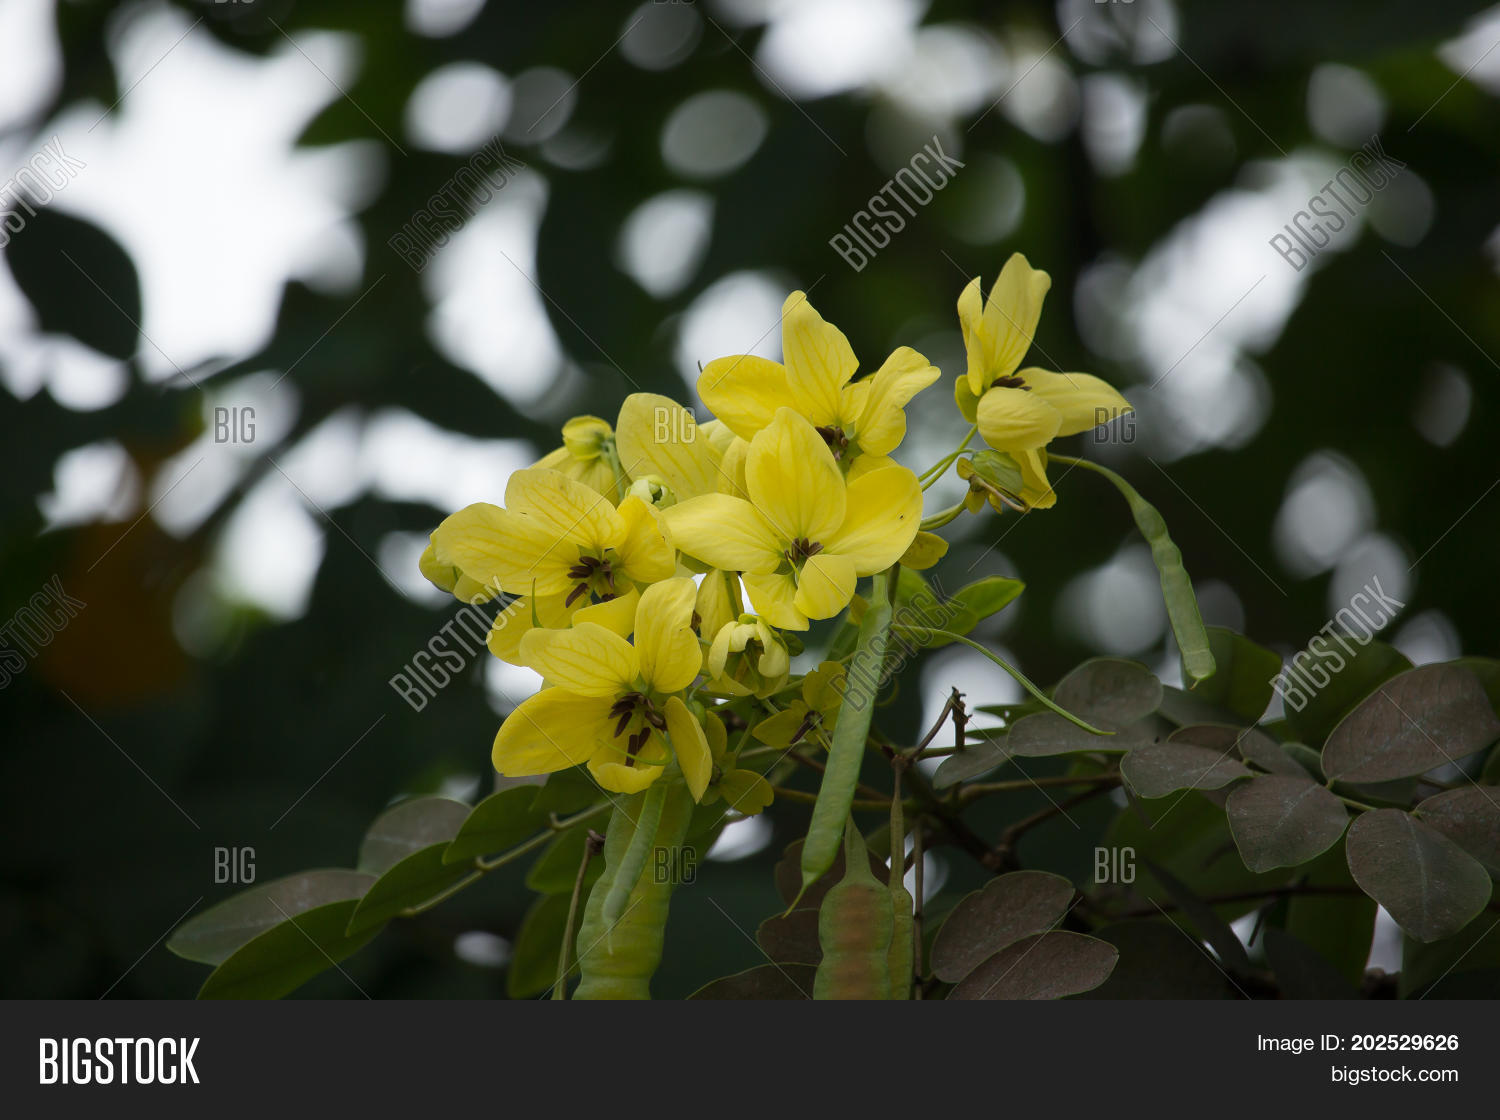 Yellow flower thai image photo free trial bigstock yellow flower of thai copper pod or cassod tree mightylinksfo